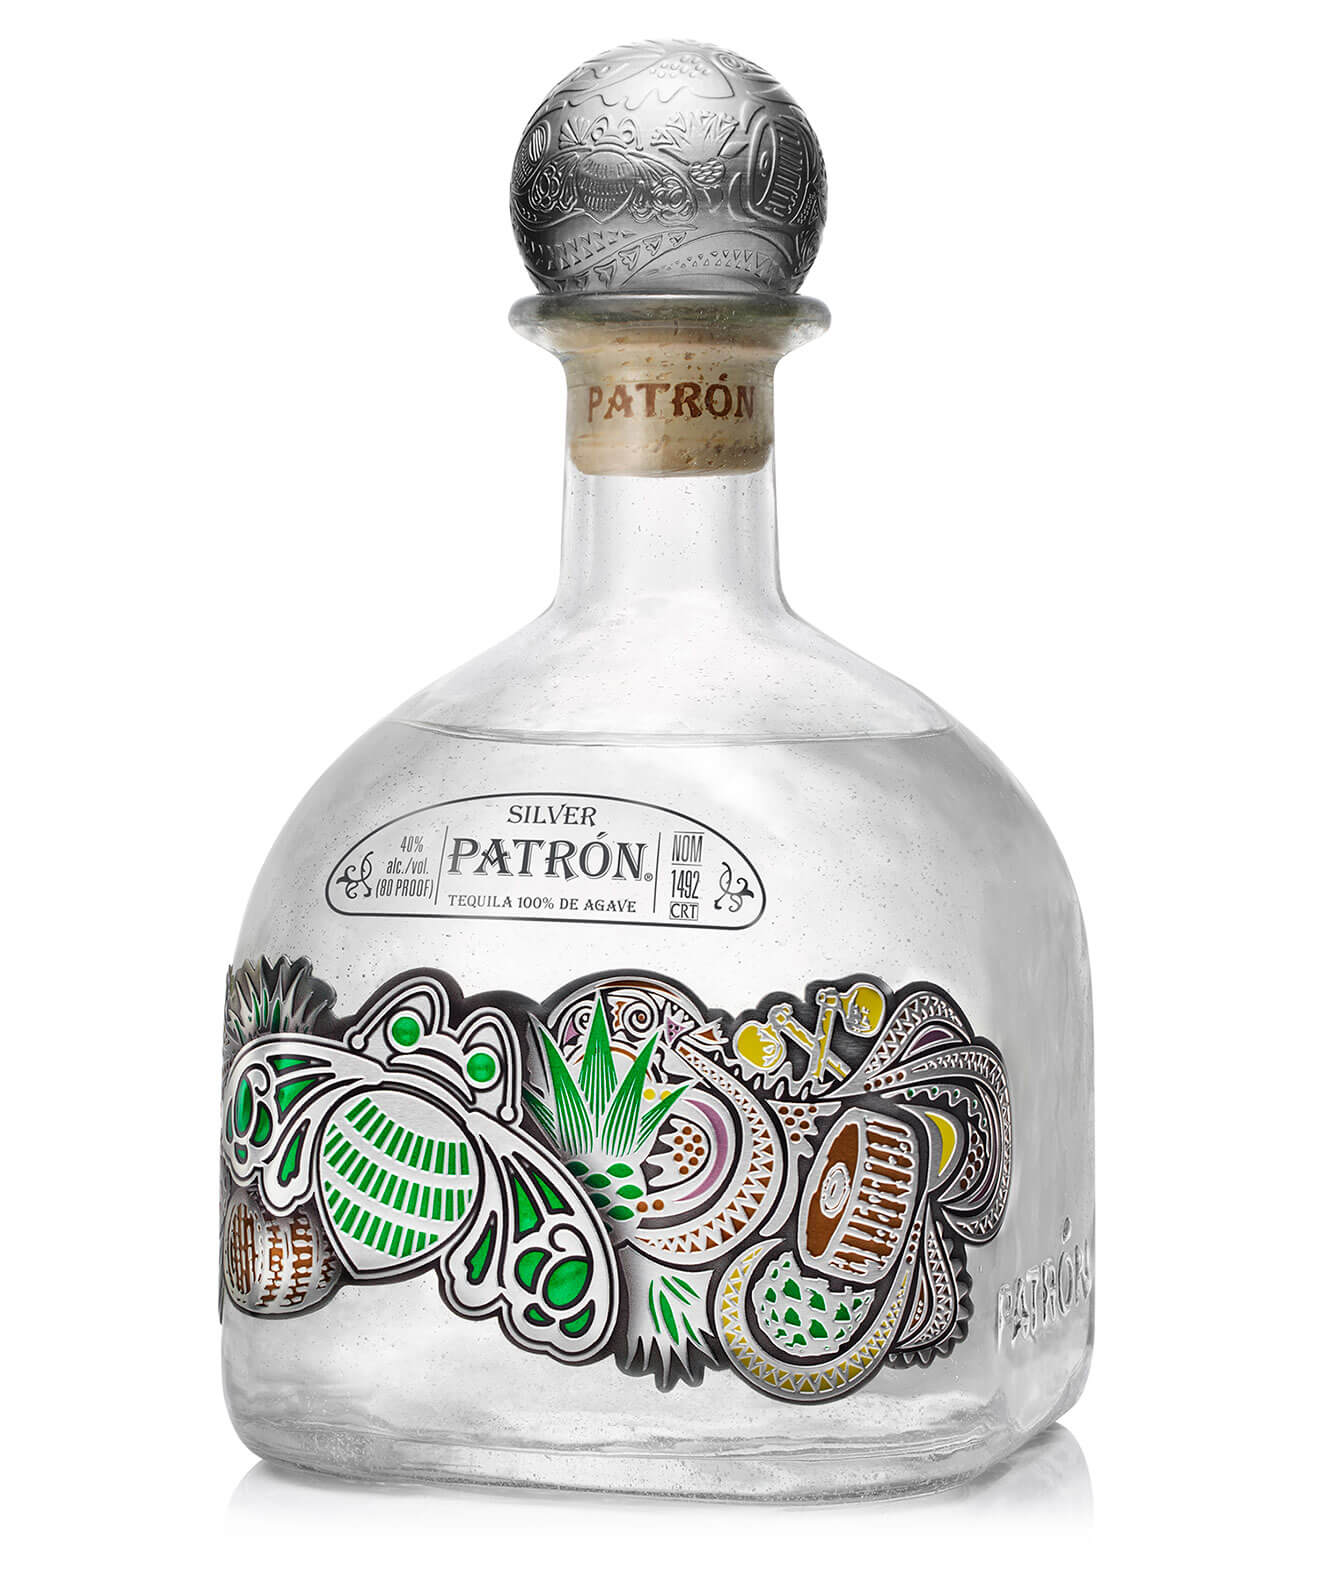 Patrón Silver One-Liter Limited-Edition Bottle on white